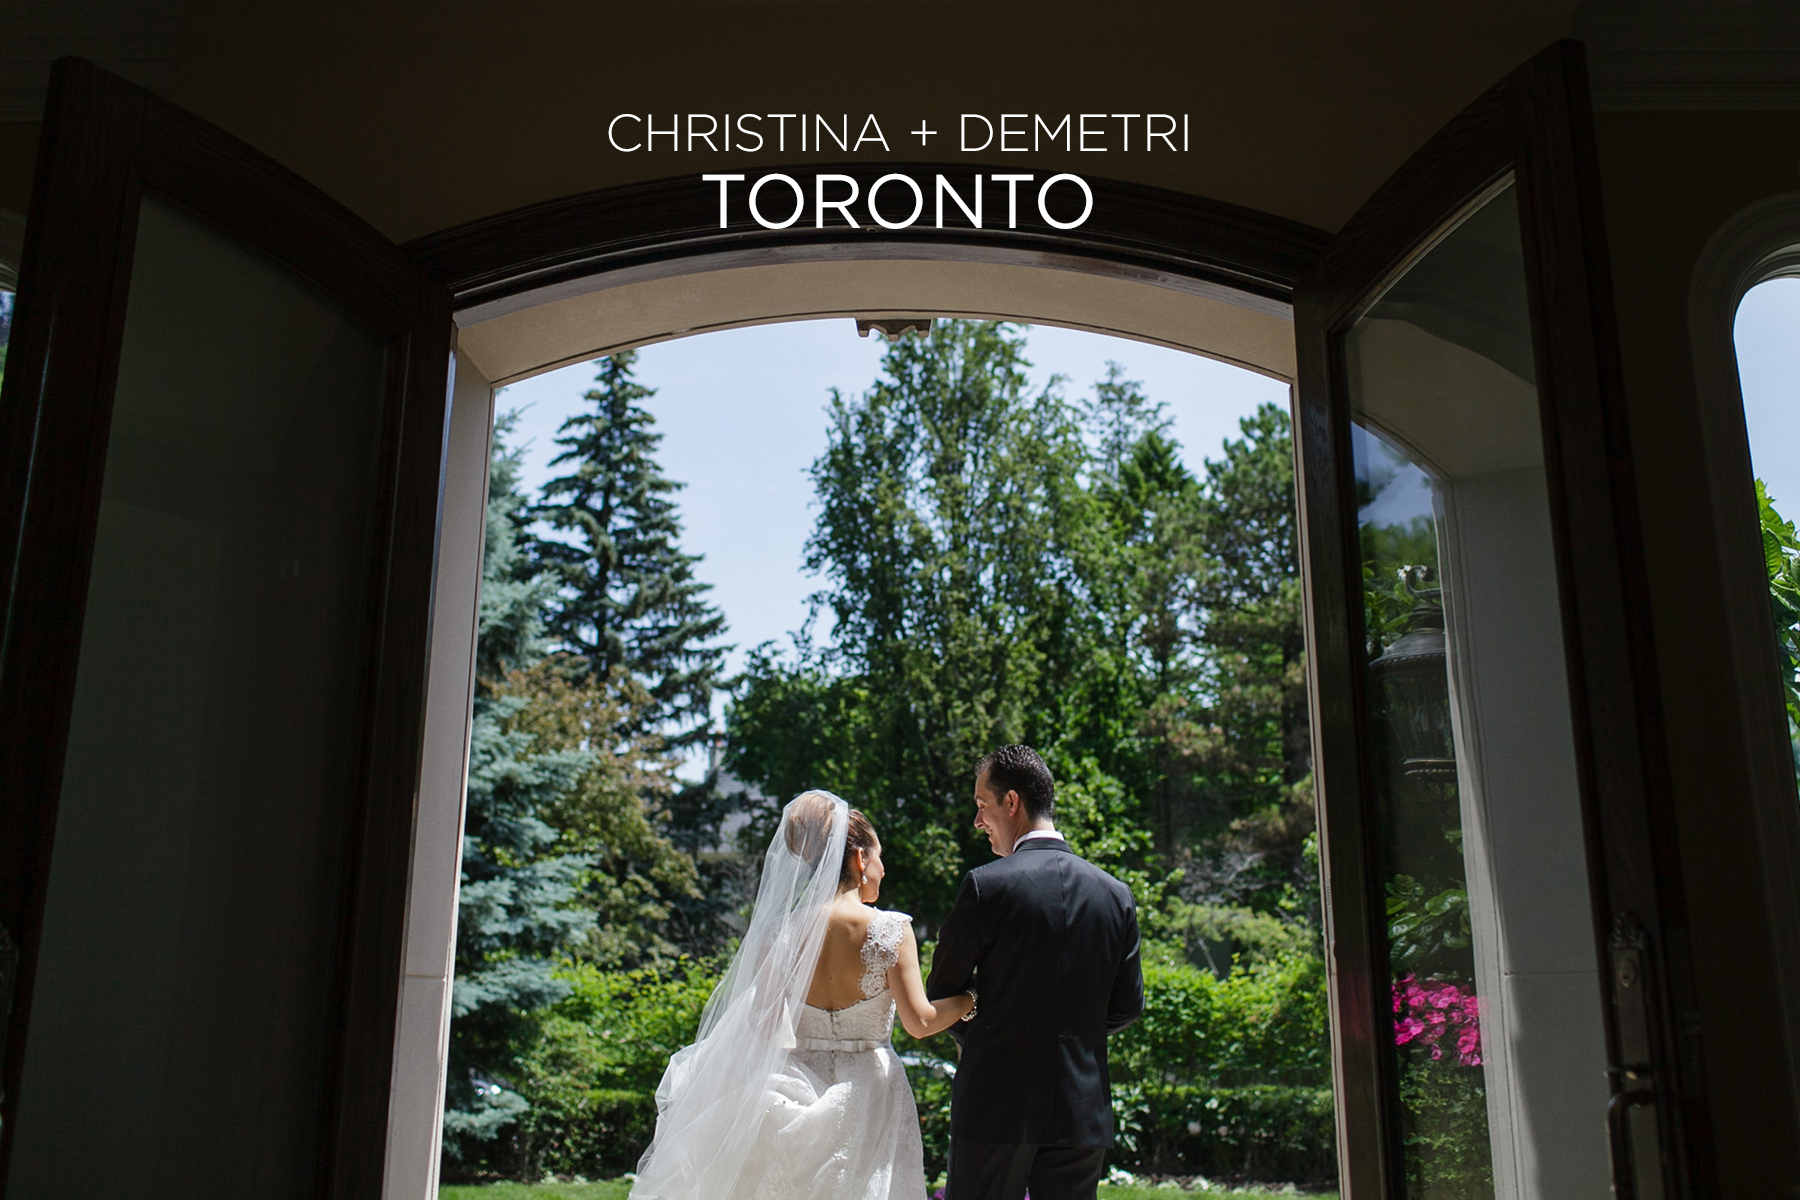 Christina and Demetri